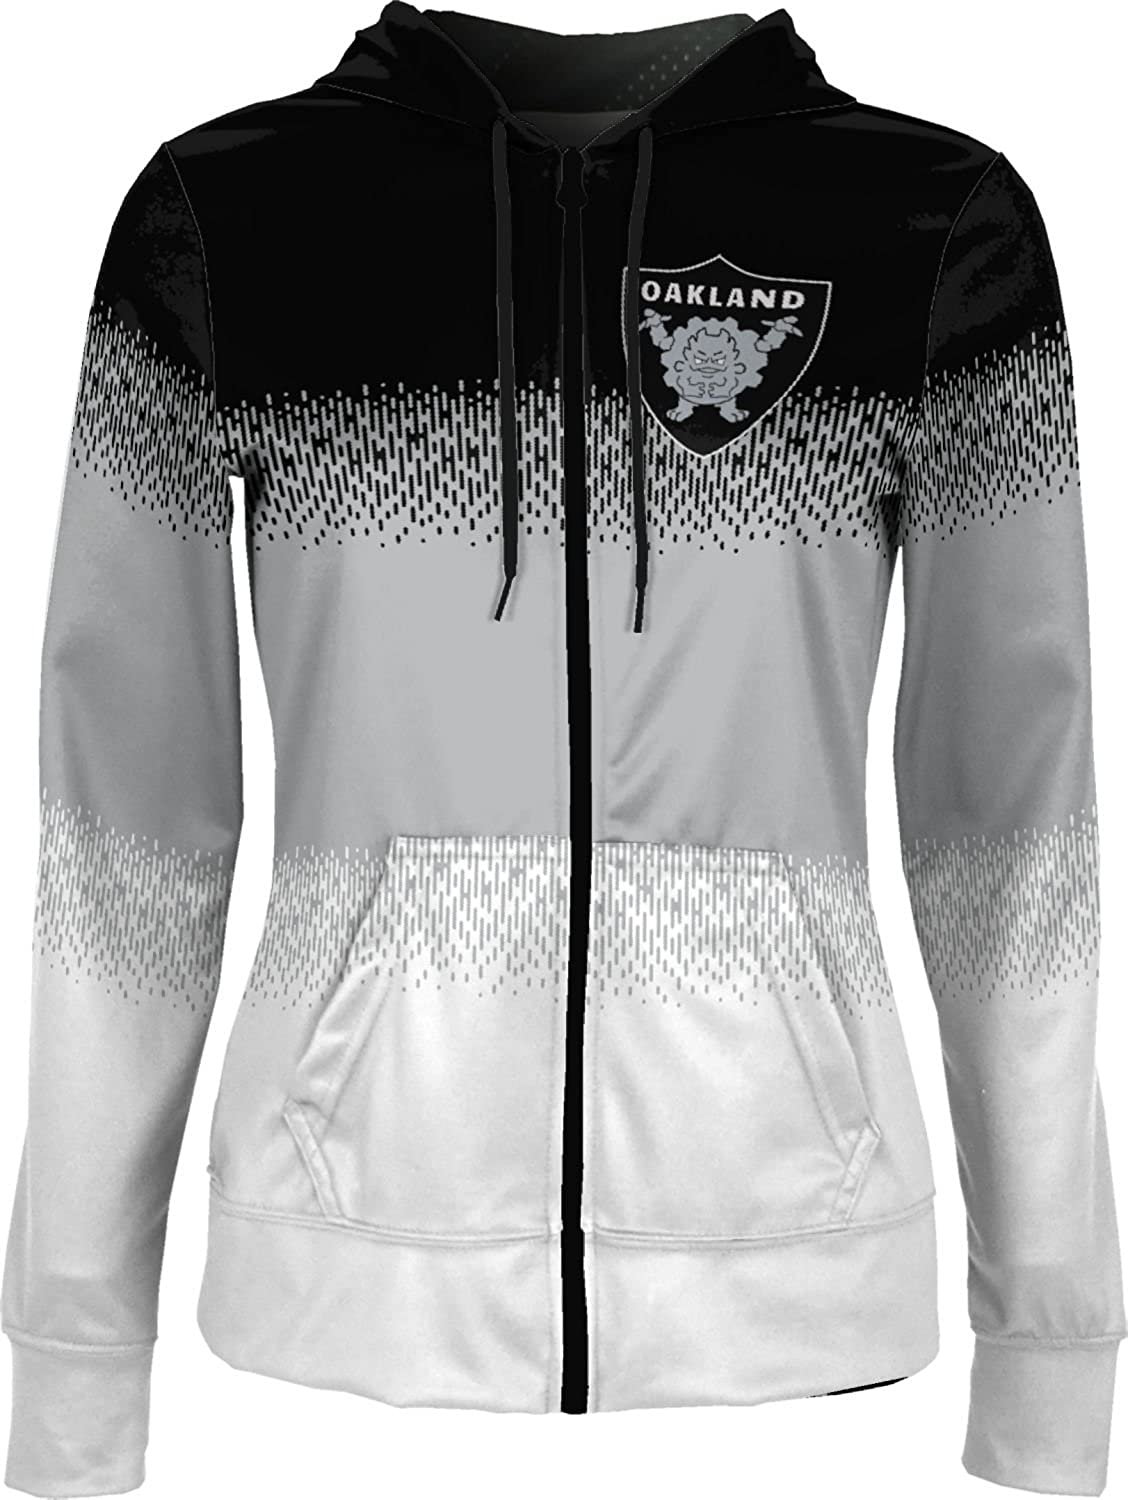 ProSphere Women's Oakland Pocket Monsters PMFL Drip Fullzip Hoodie